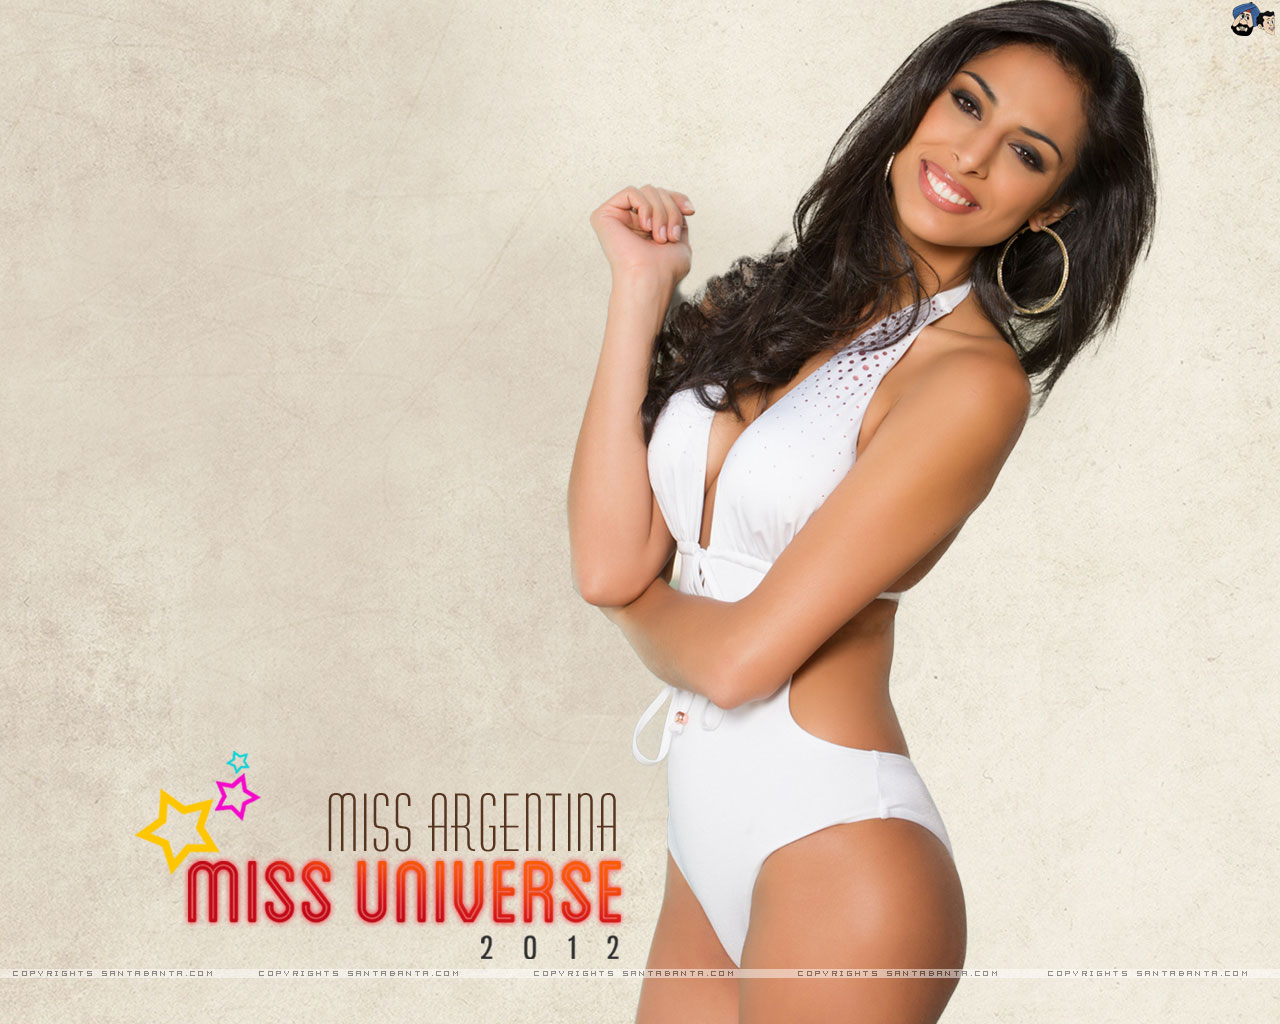 Miss Argentina from 2013 Miss Universe Swimsuit Competition | E! News